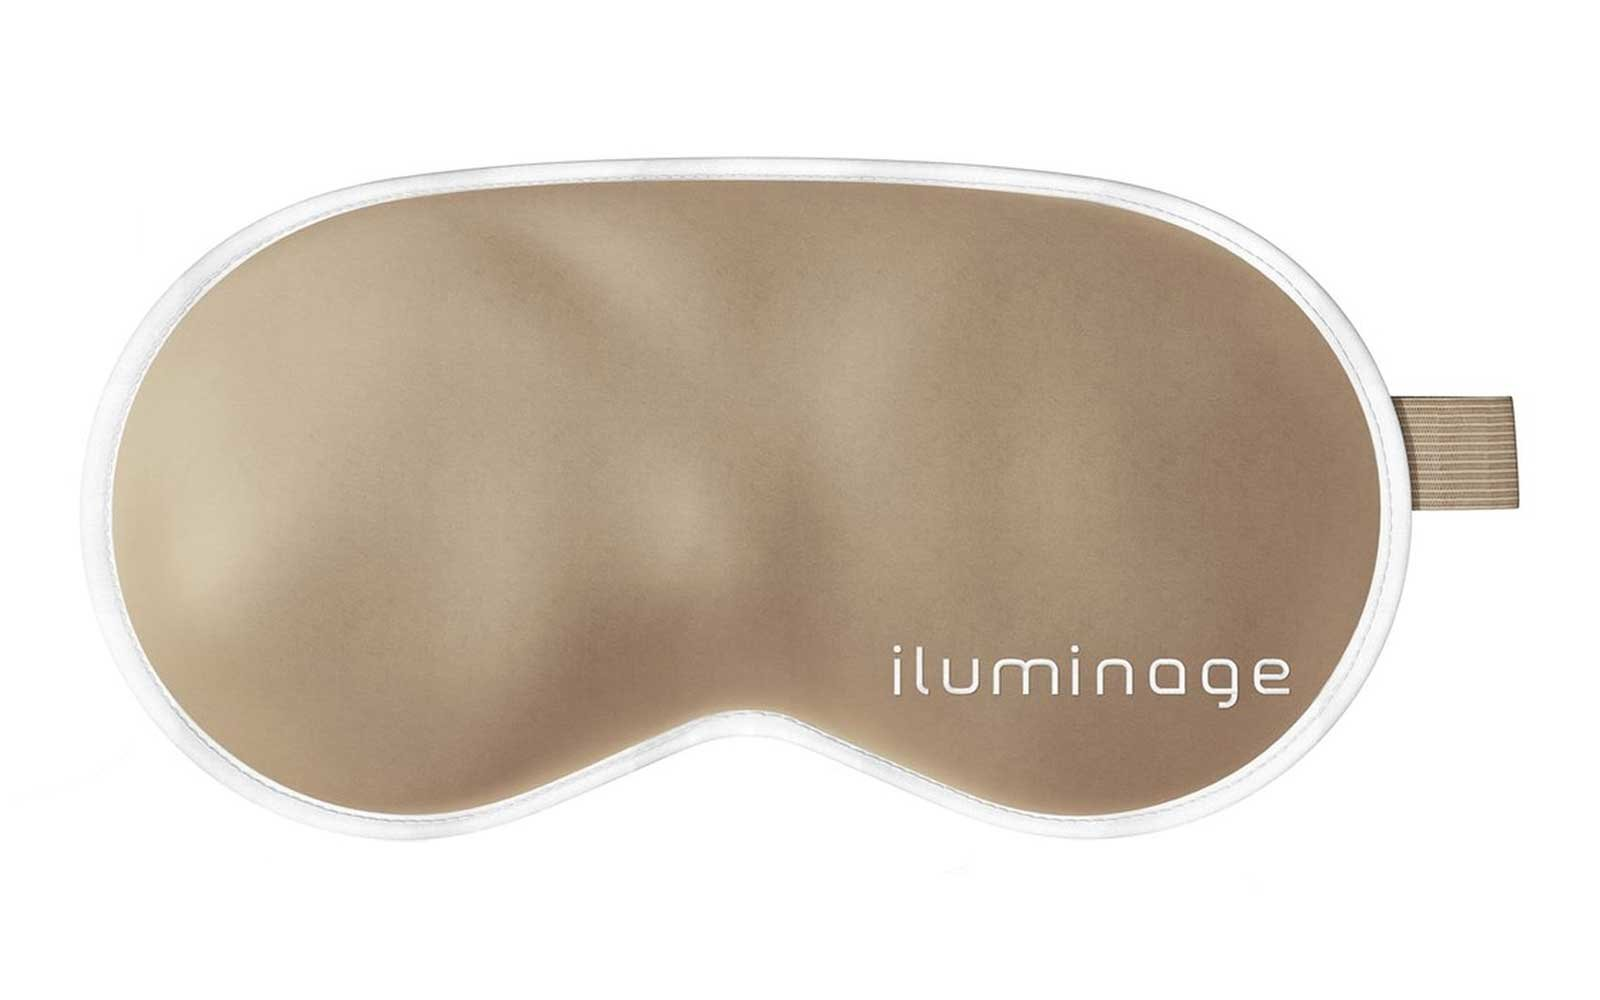 Illuminage Eye Mask